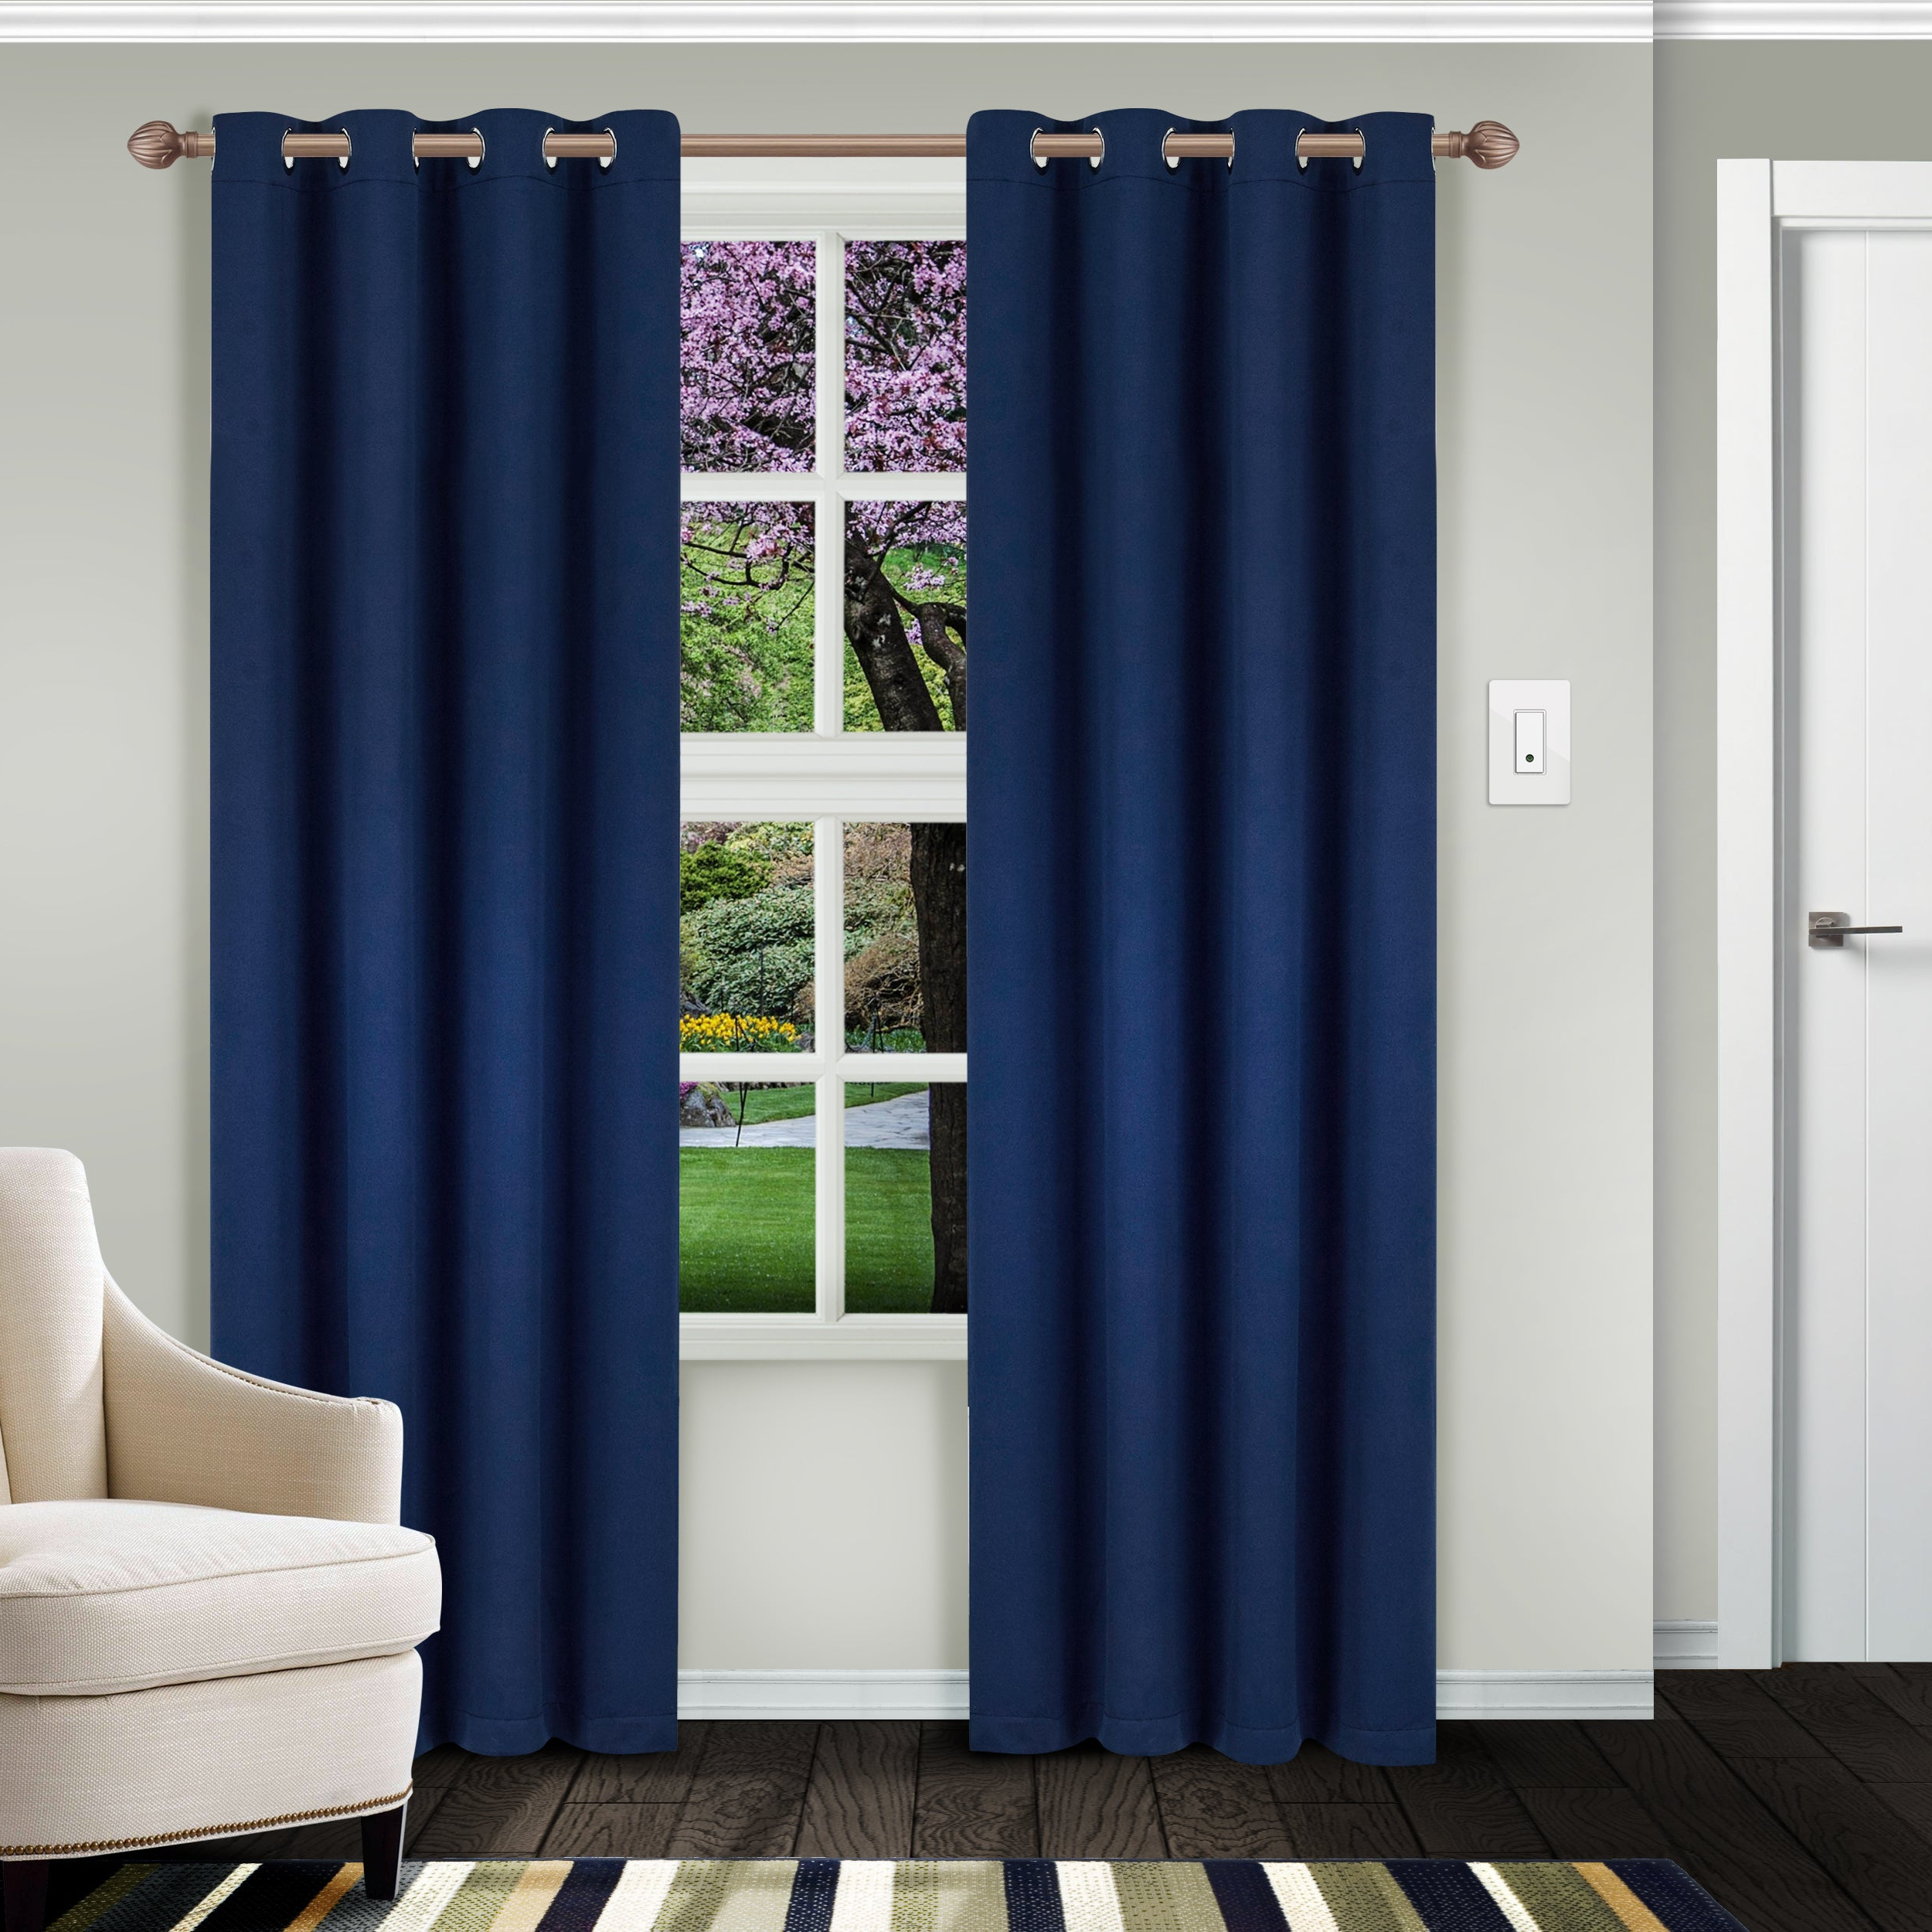 Superior Solid Insulated Thermal Blackout Grommet Curtain Panel Pair In Recent Superior Solid Insulated Thermal Blackout Grommet Curtain Panel Pairs (View 2 of 20)